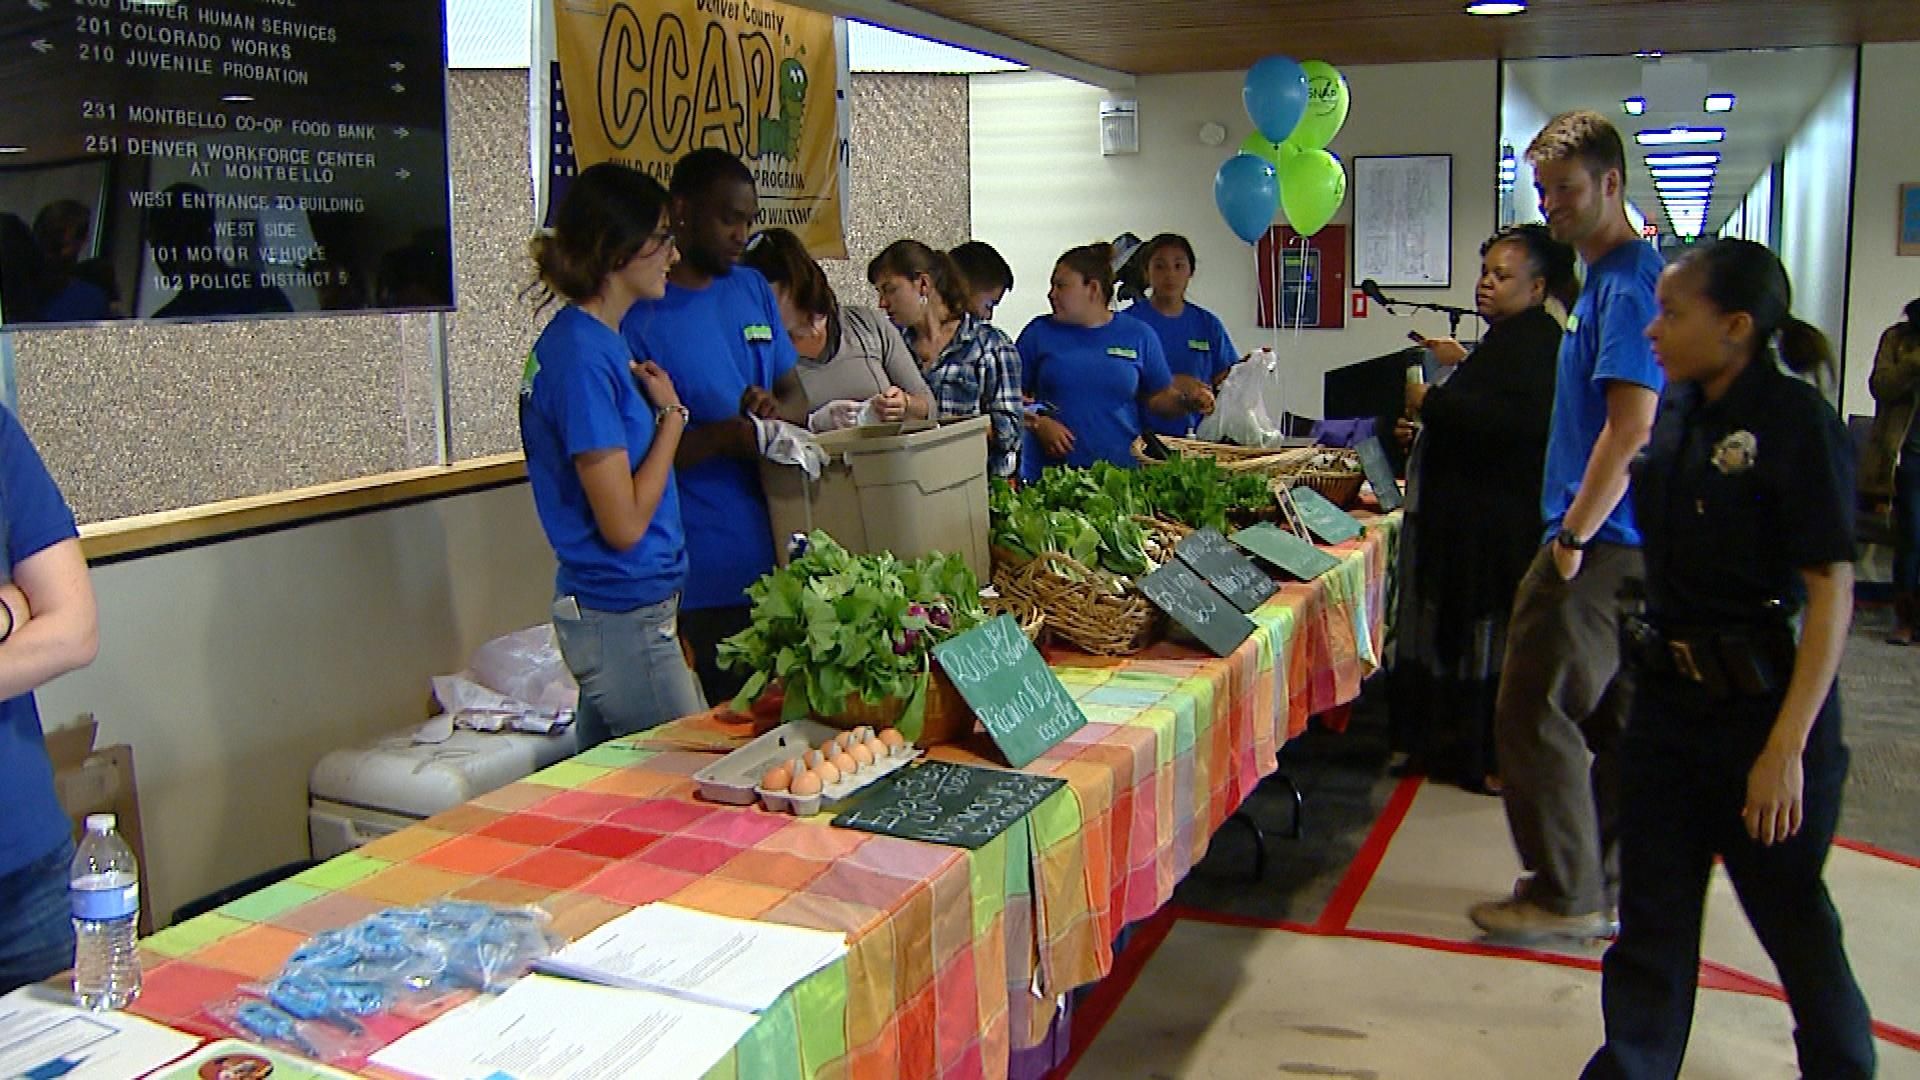 Produce is sold at the Denver Human Services office (credit: CBS)